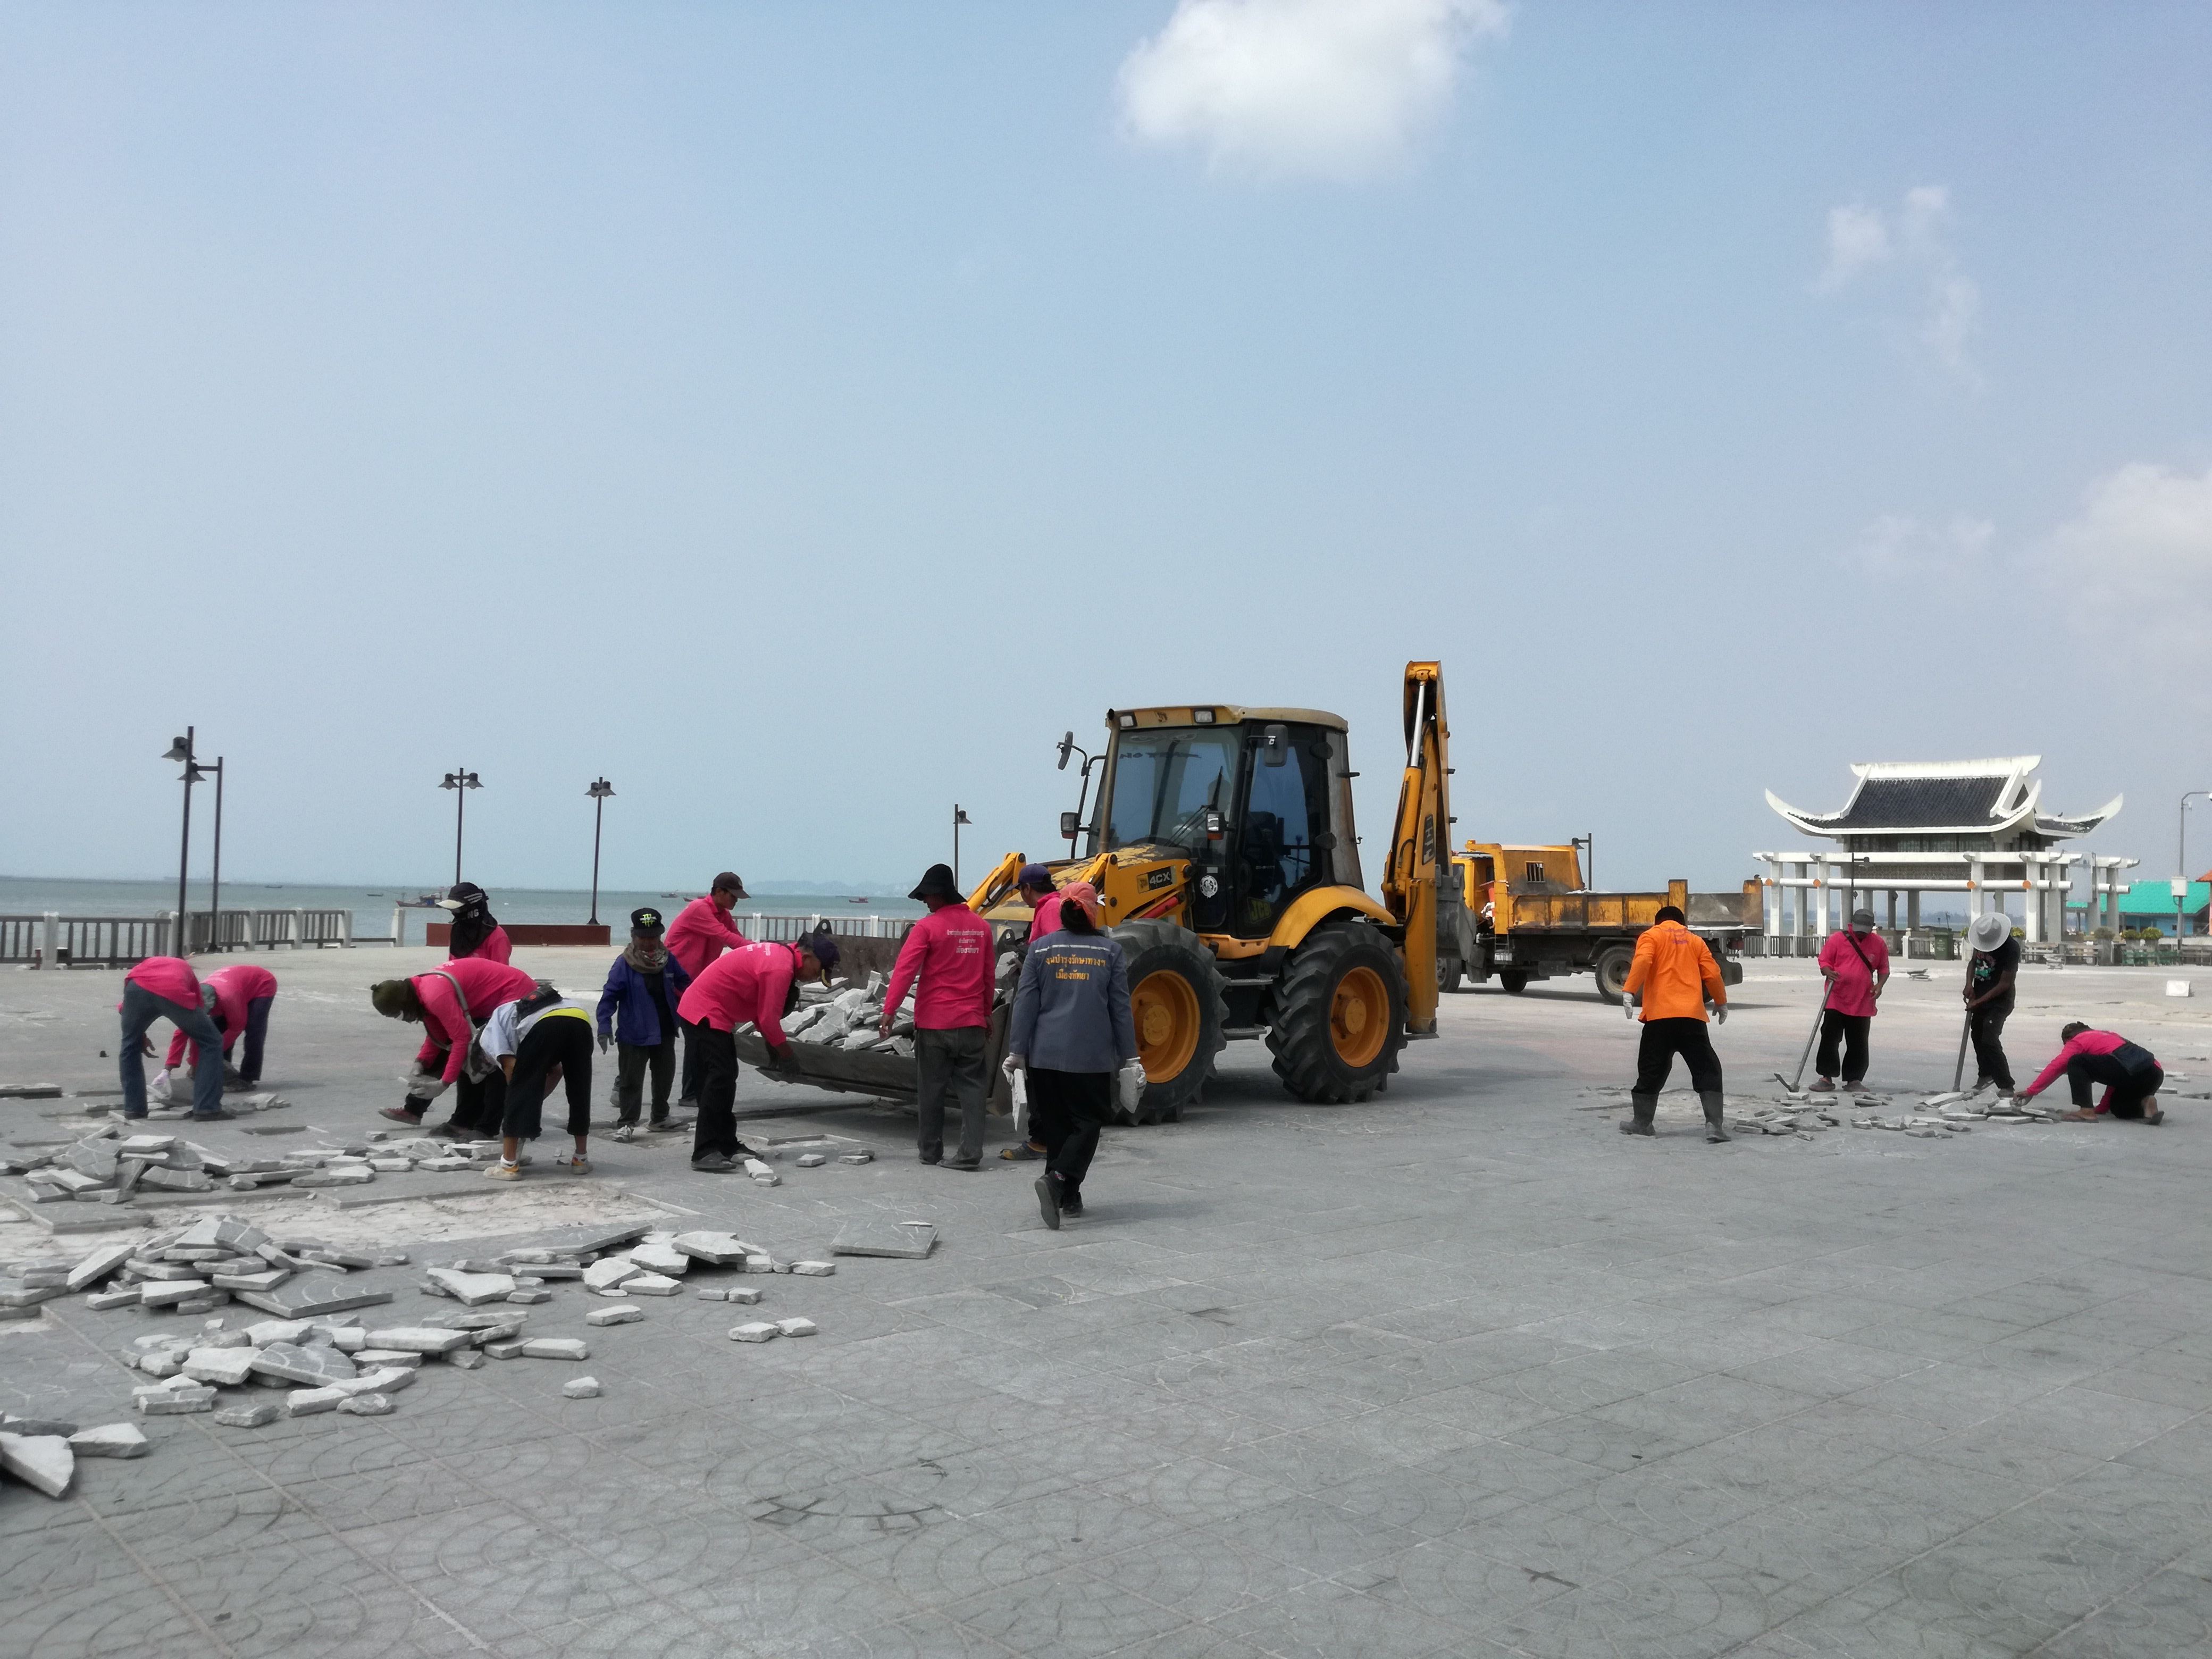 Pattaya city work crews repaired the multipurpose zone of Naklua's Lan Po Public Park after it was heavily damaged by cars parking on the unreinforced pavement.